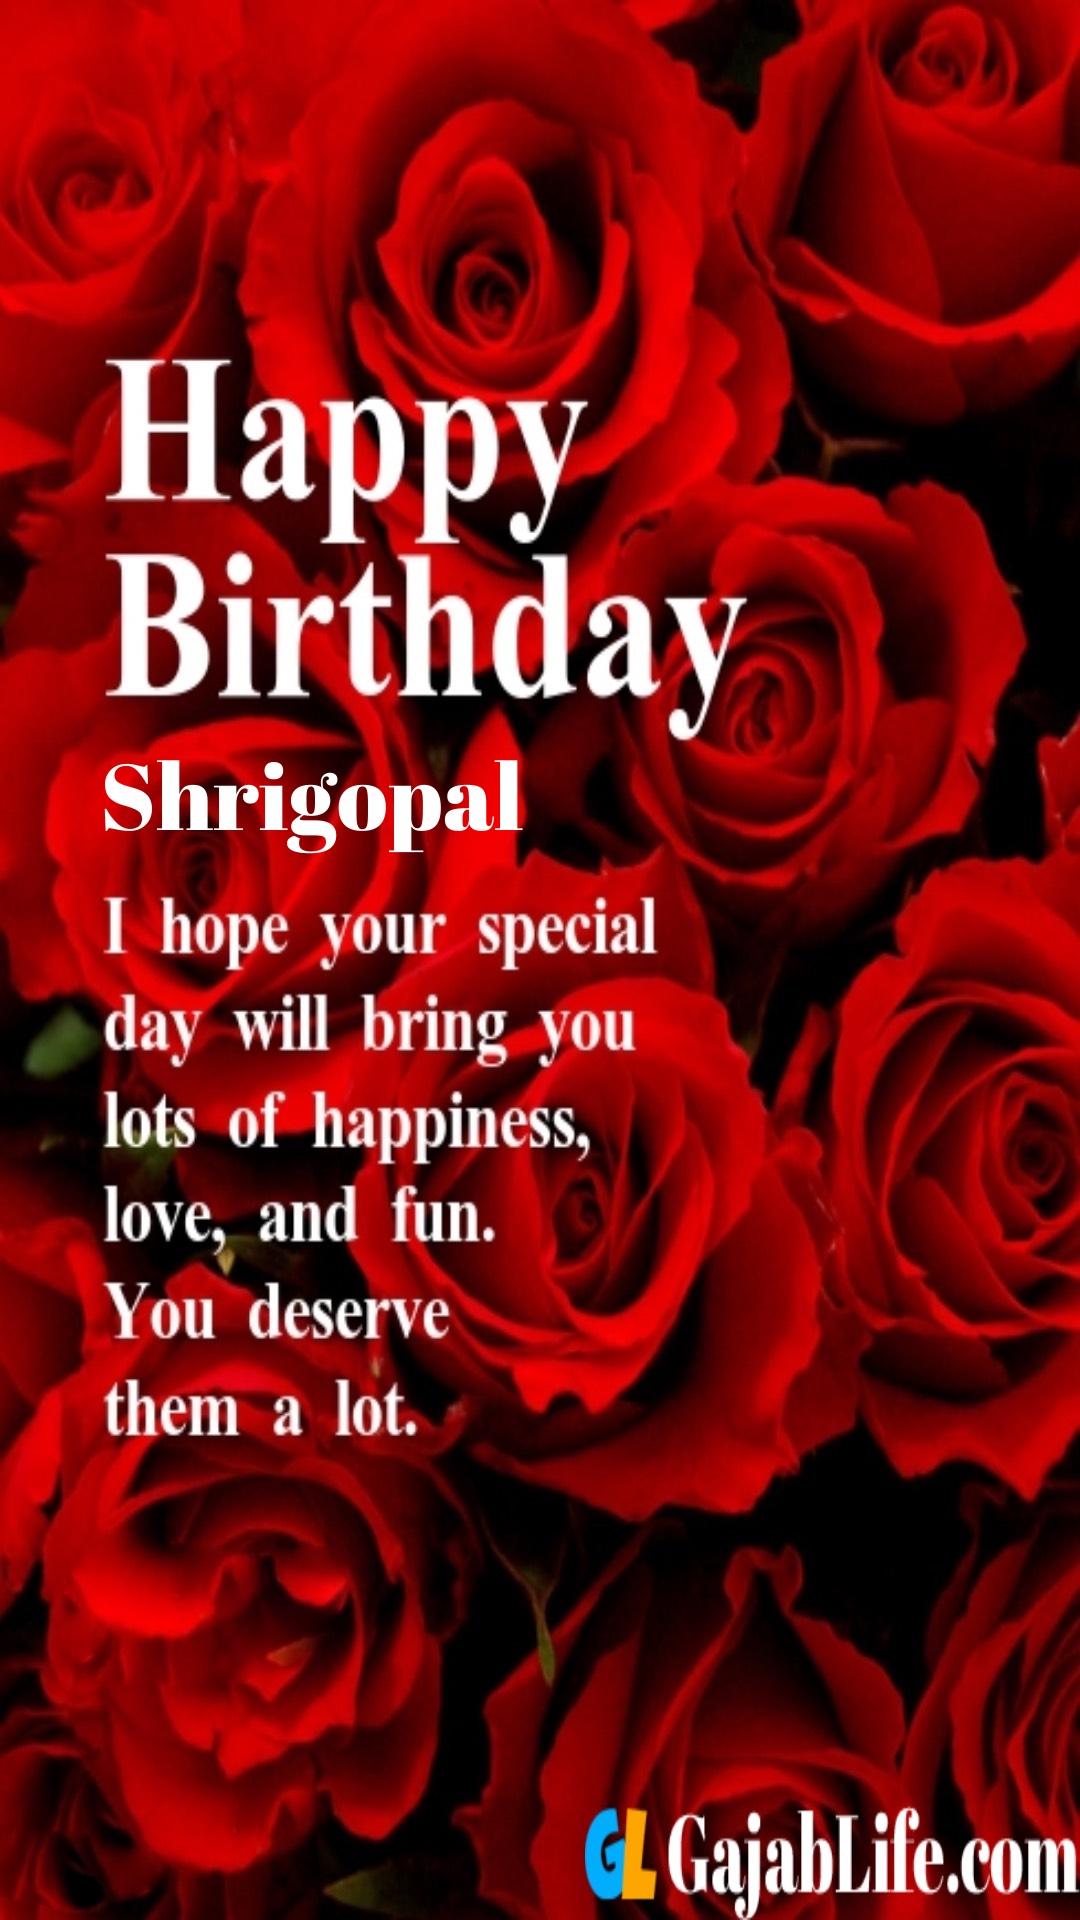 Shrigopal birthday greeting card with rose & love